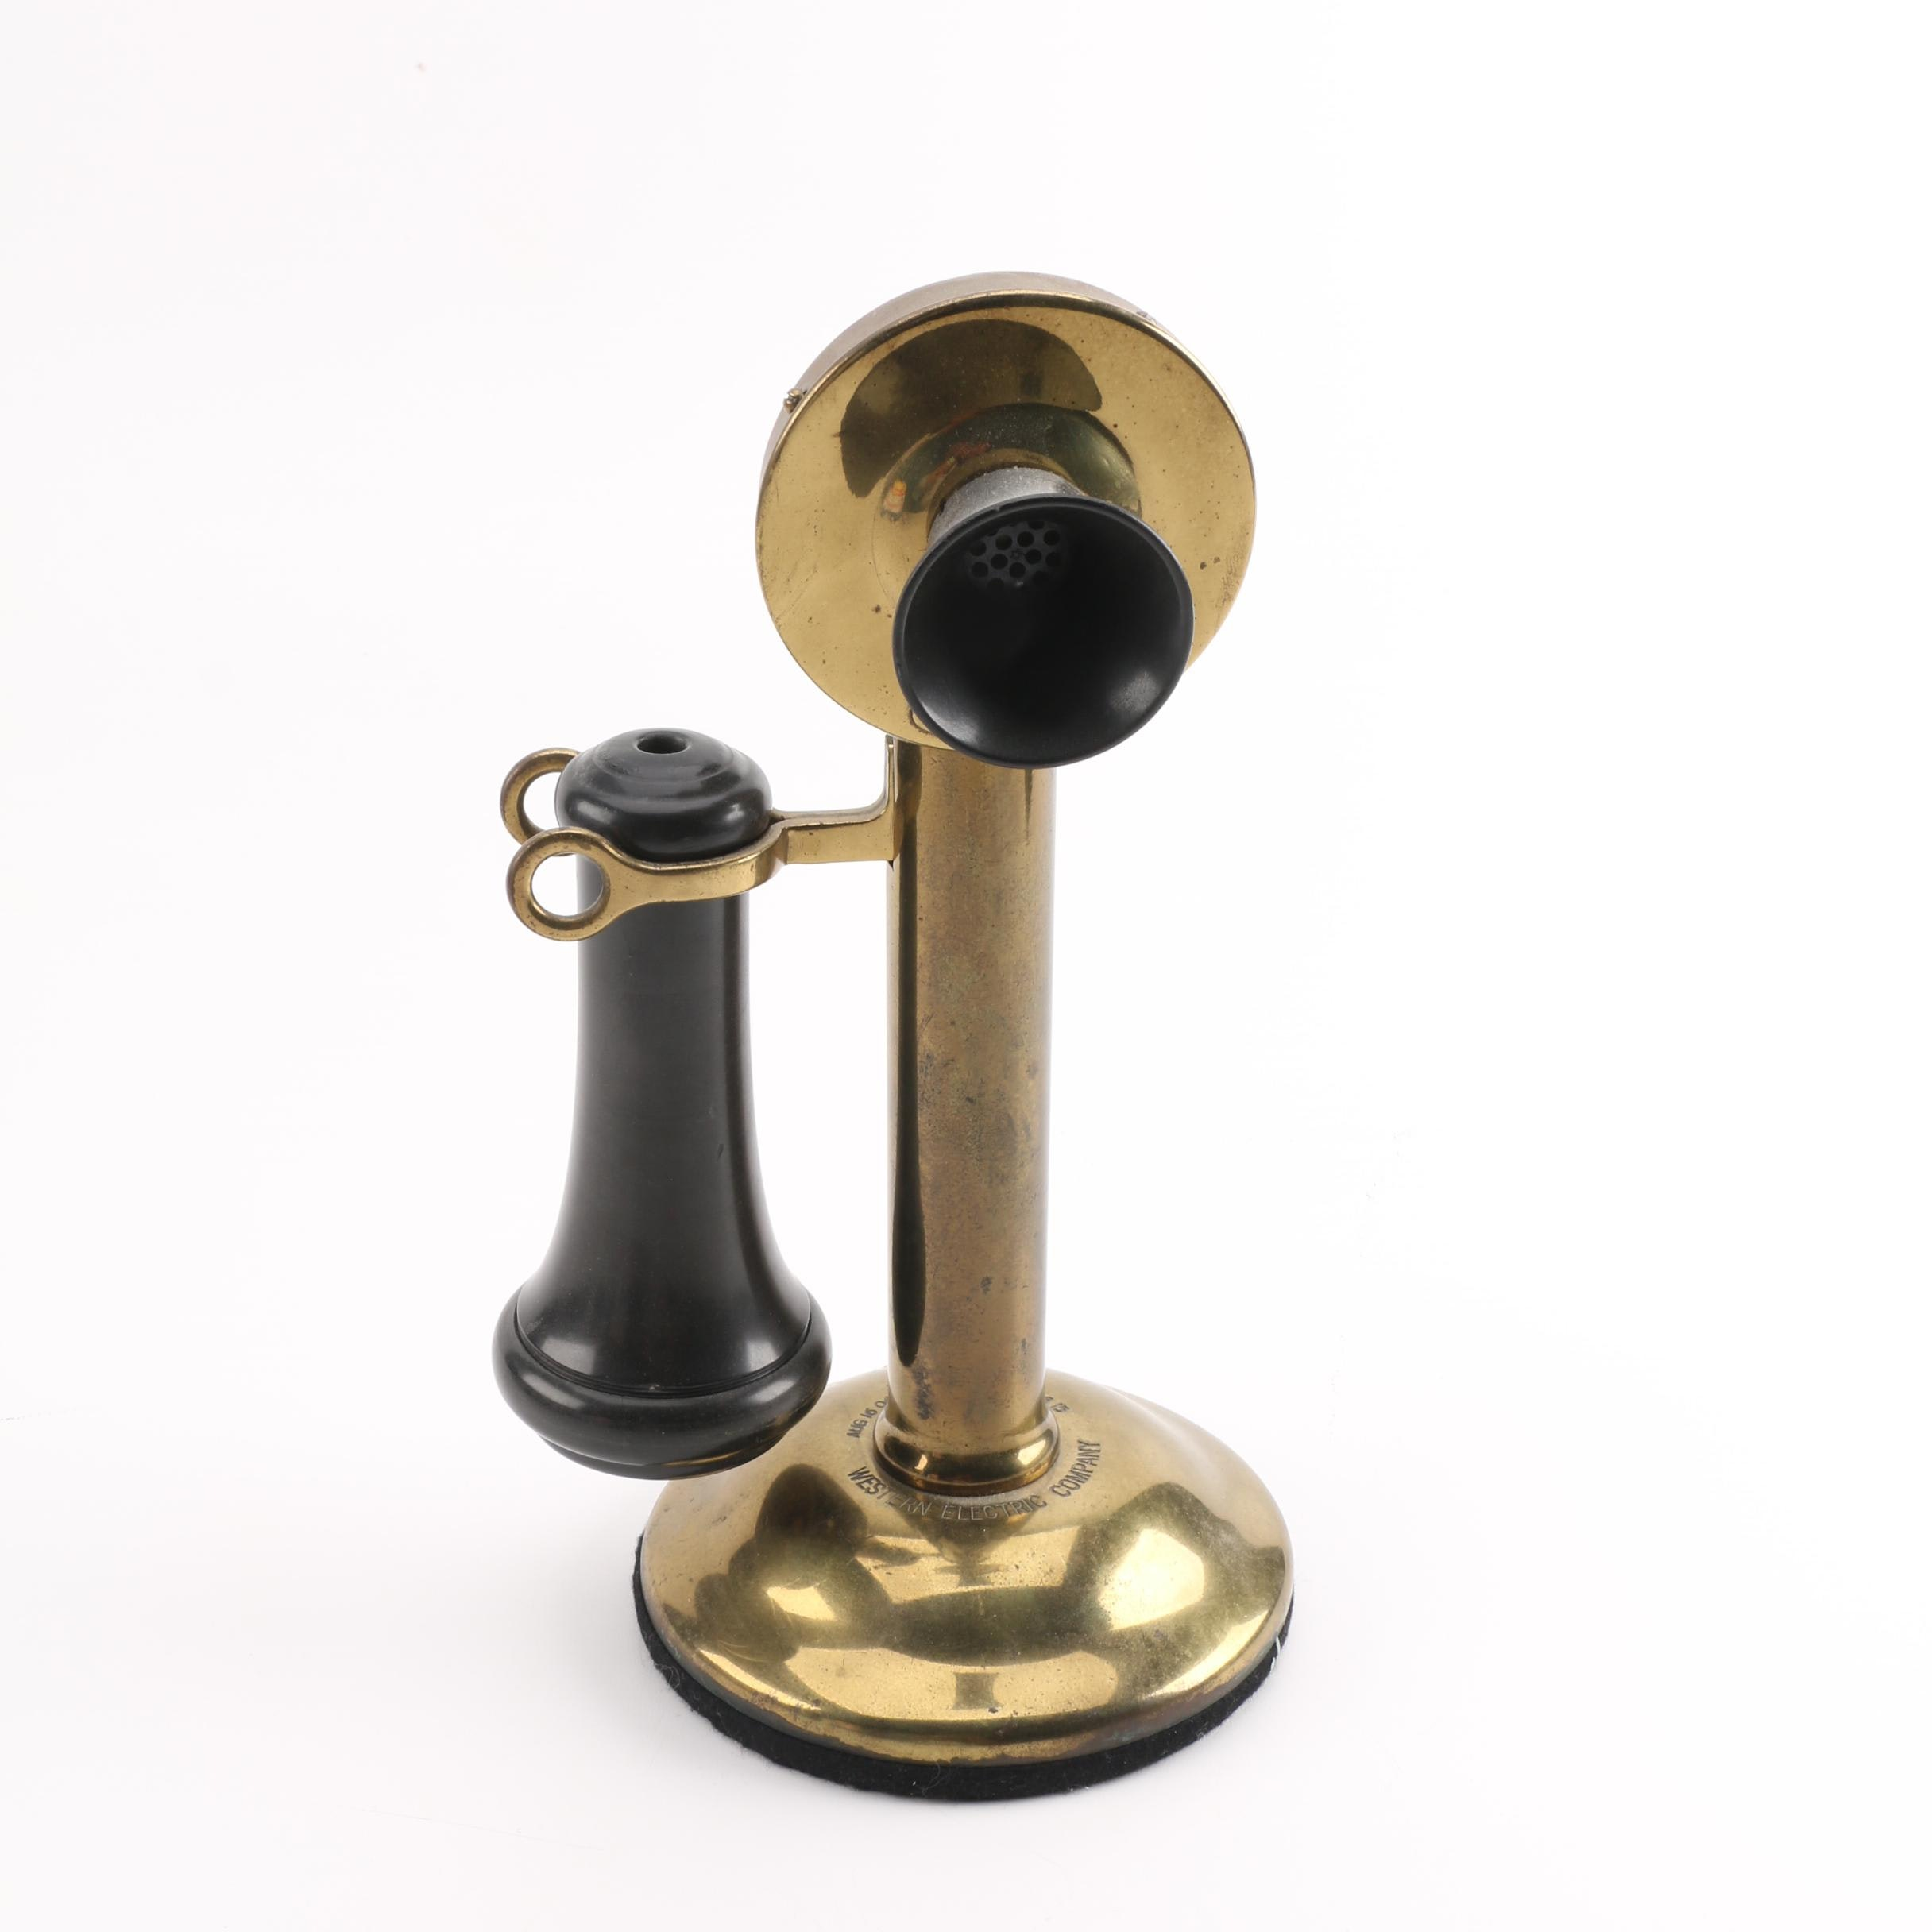 Vintage Candlestick Phone by The American Bell Telephone Company